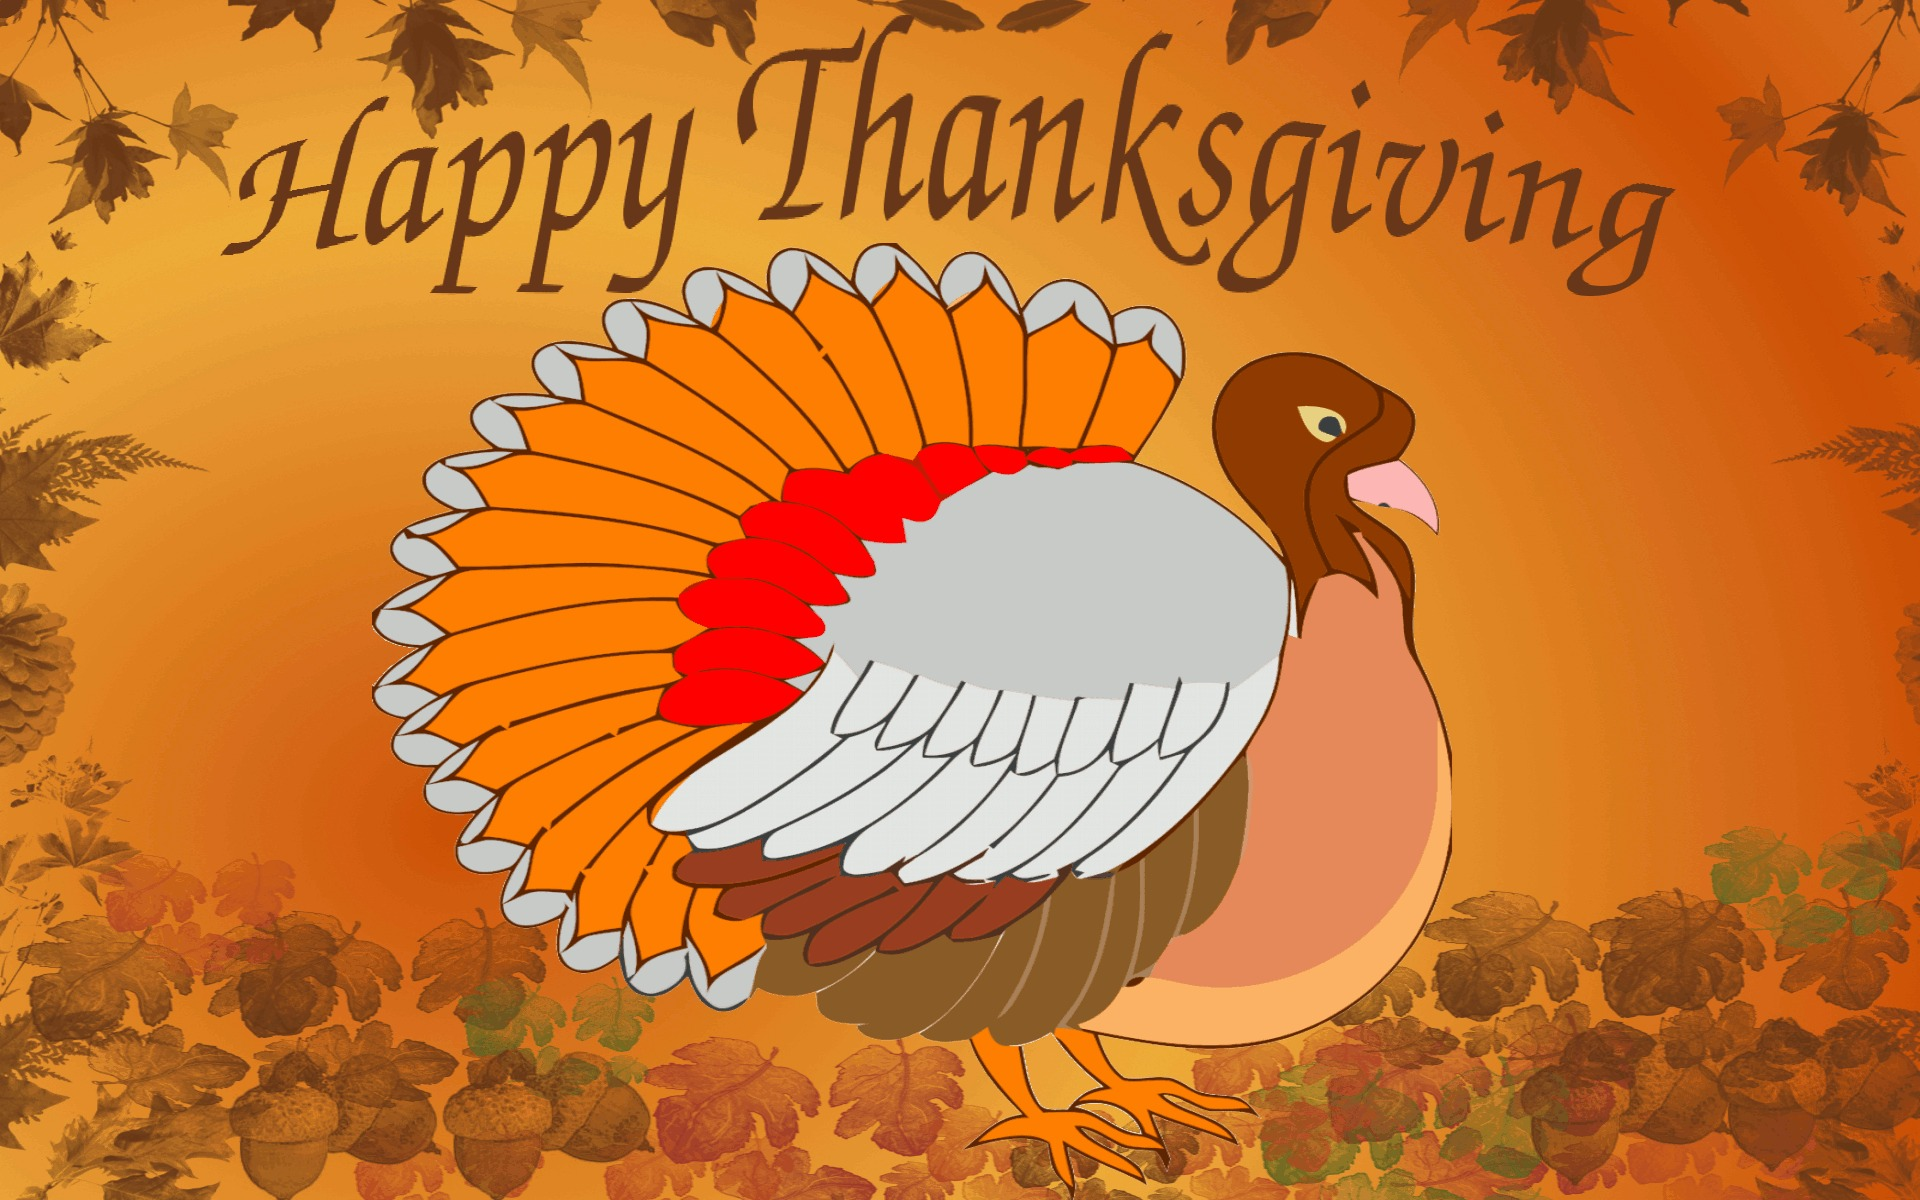 Advance Thanksgiving Wallpaper